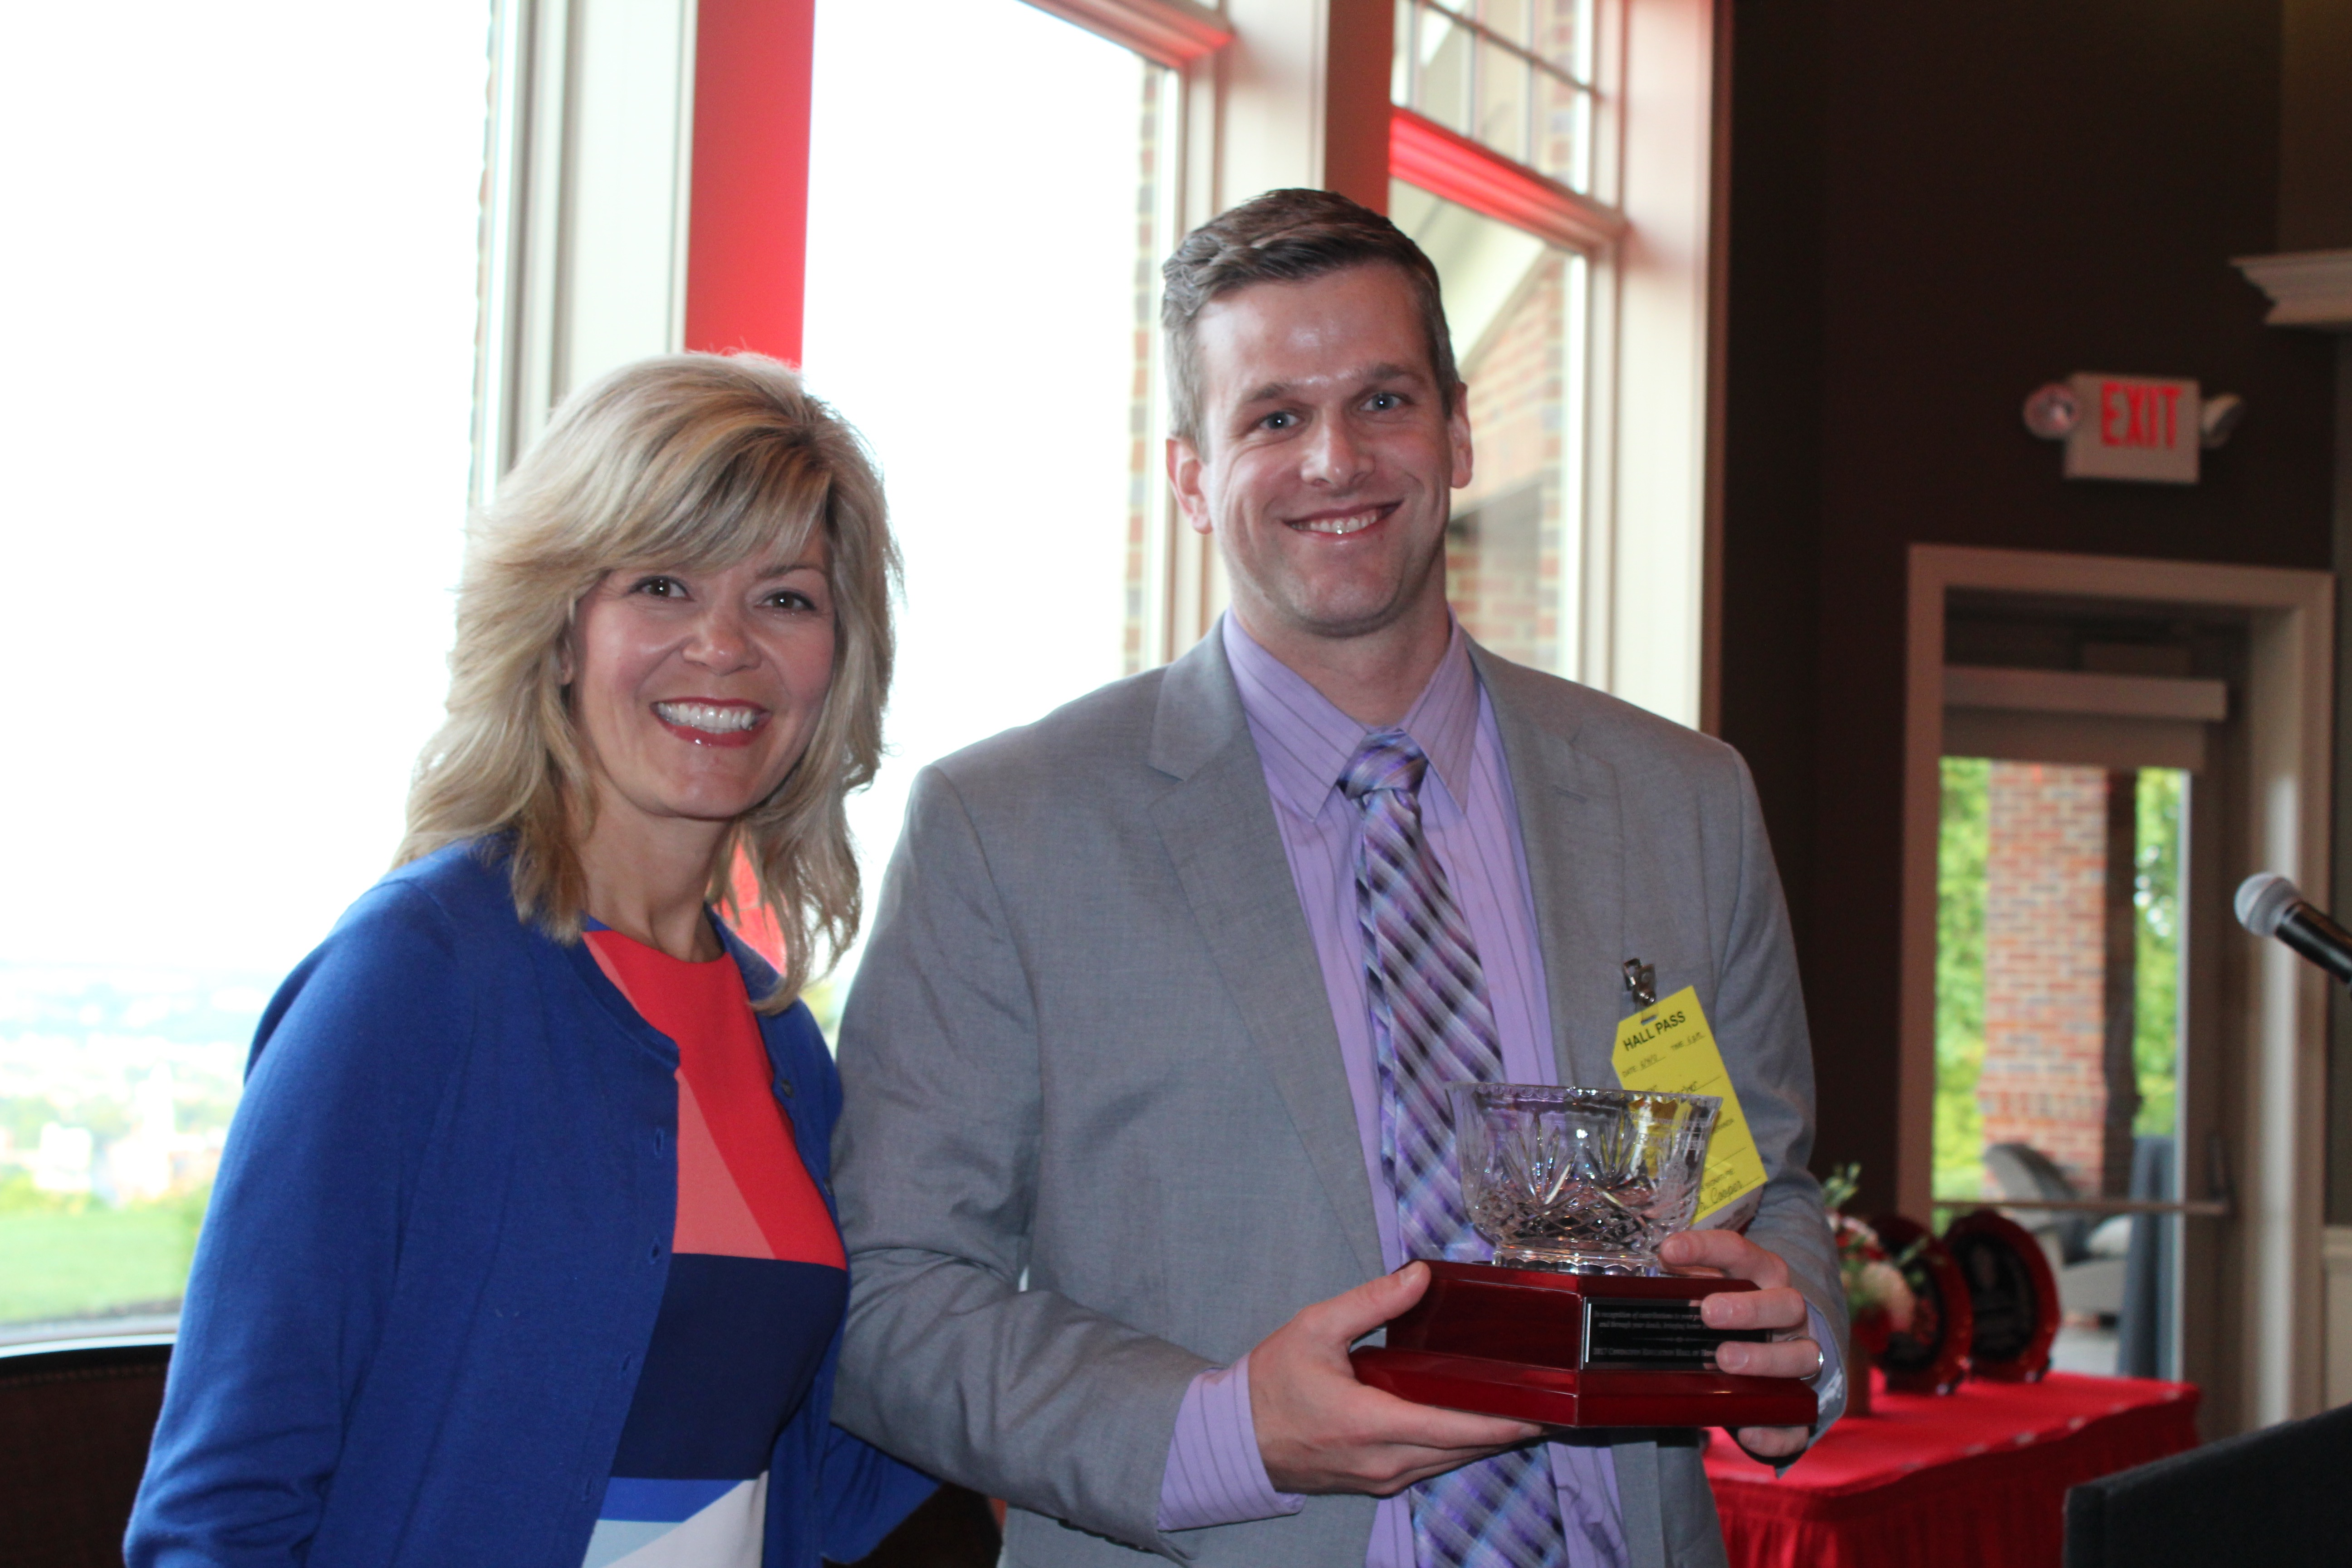 Ryan Fischer, Young Alumnus Award Recipient